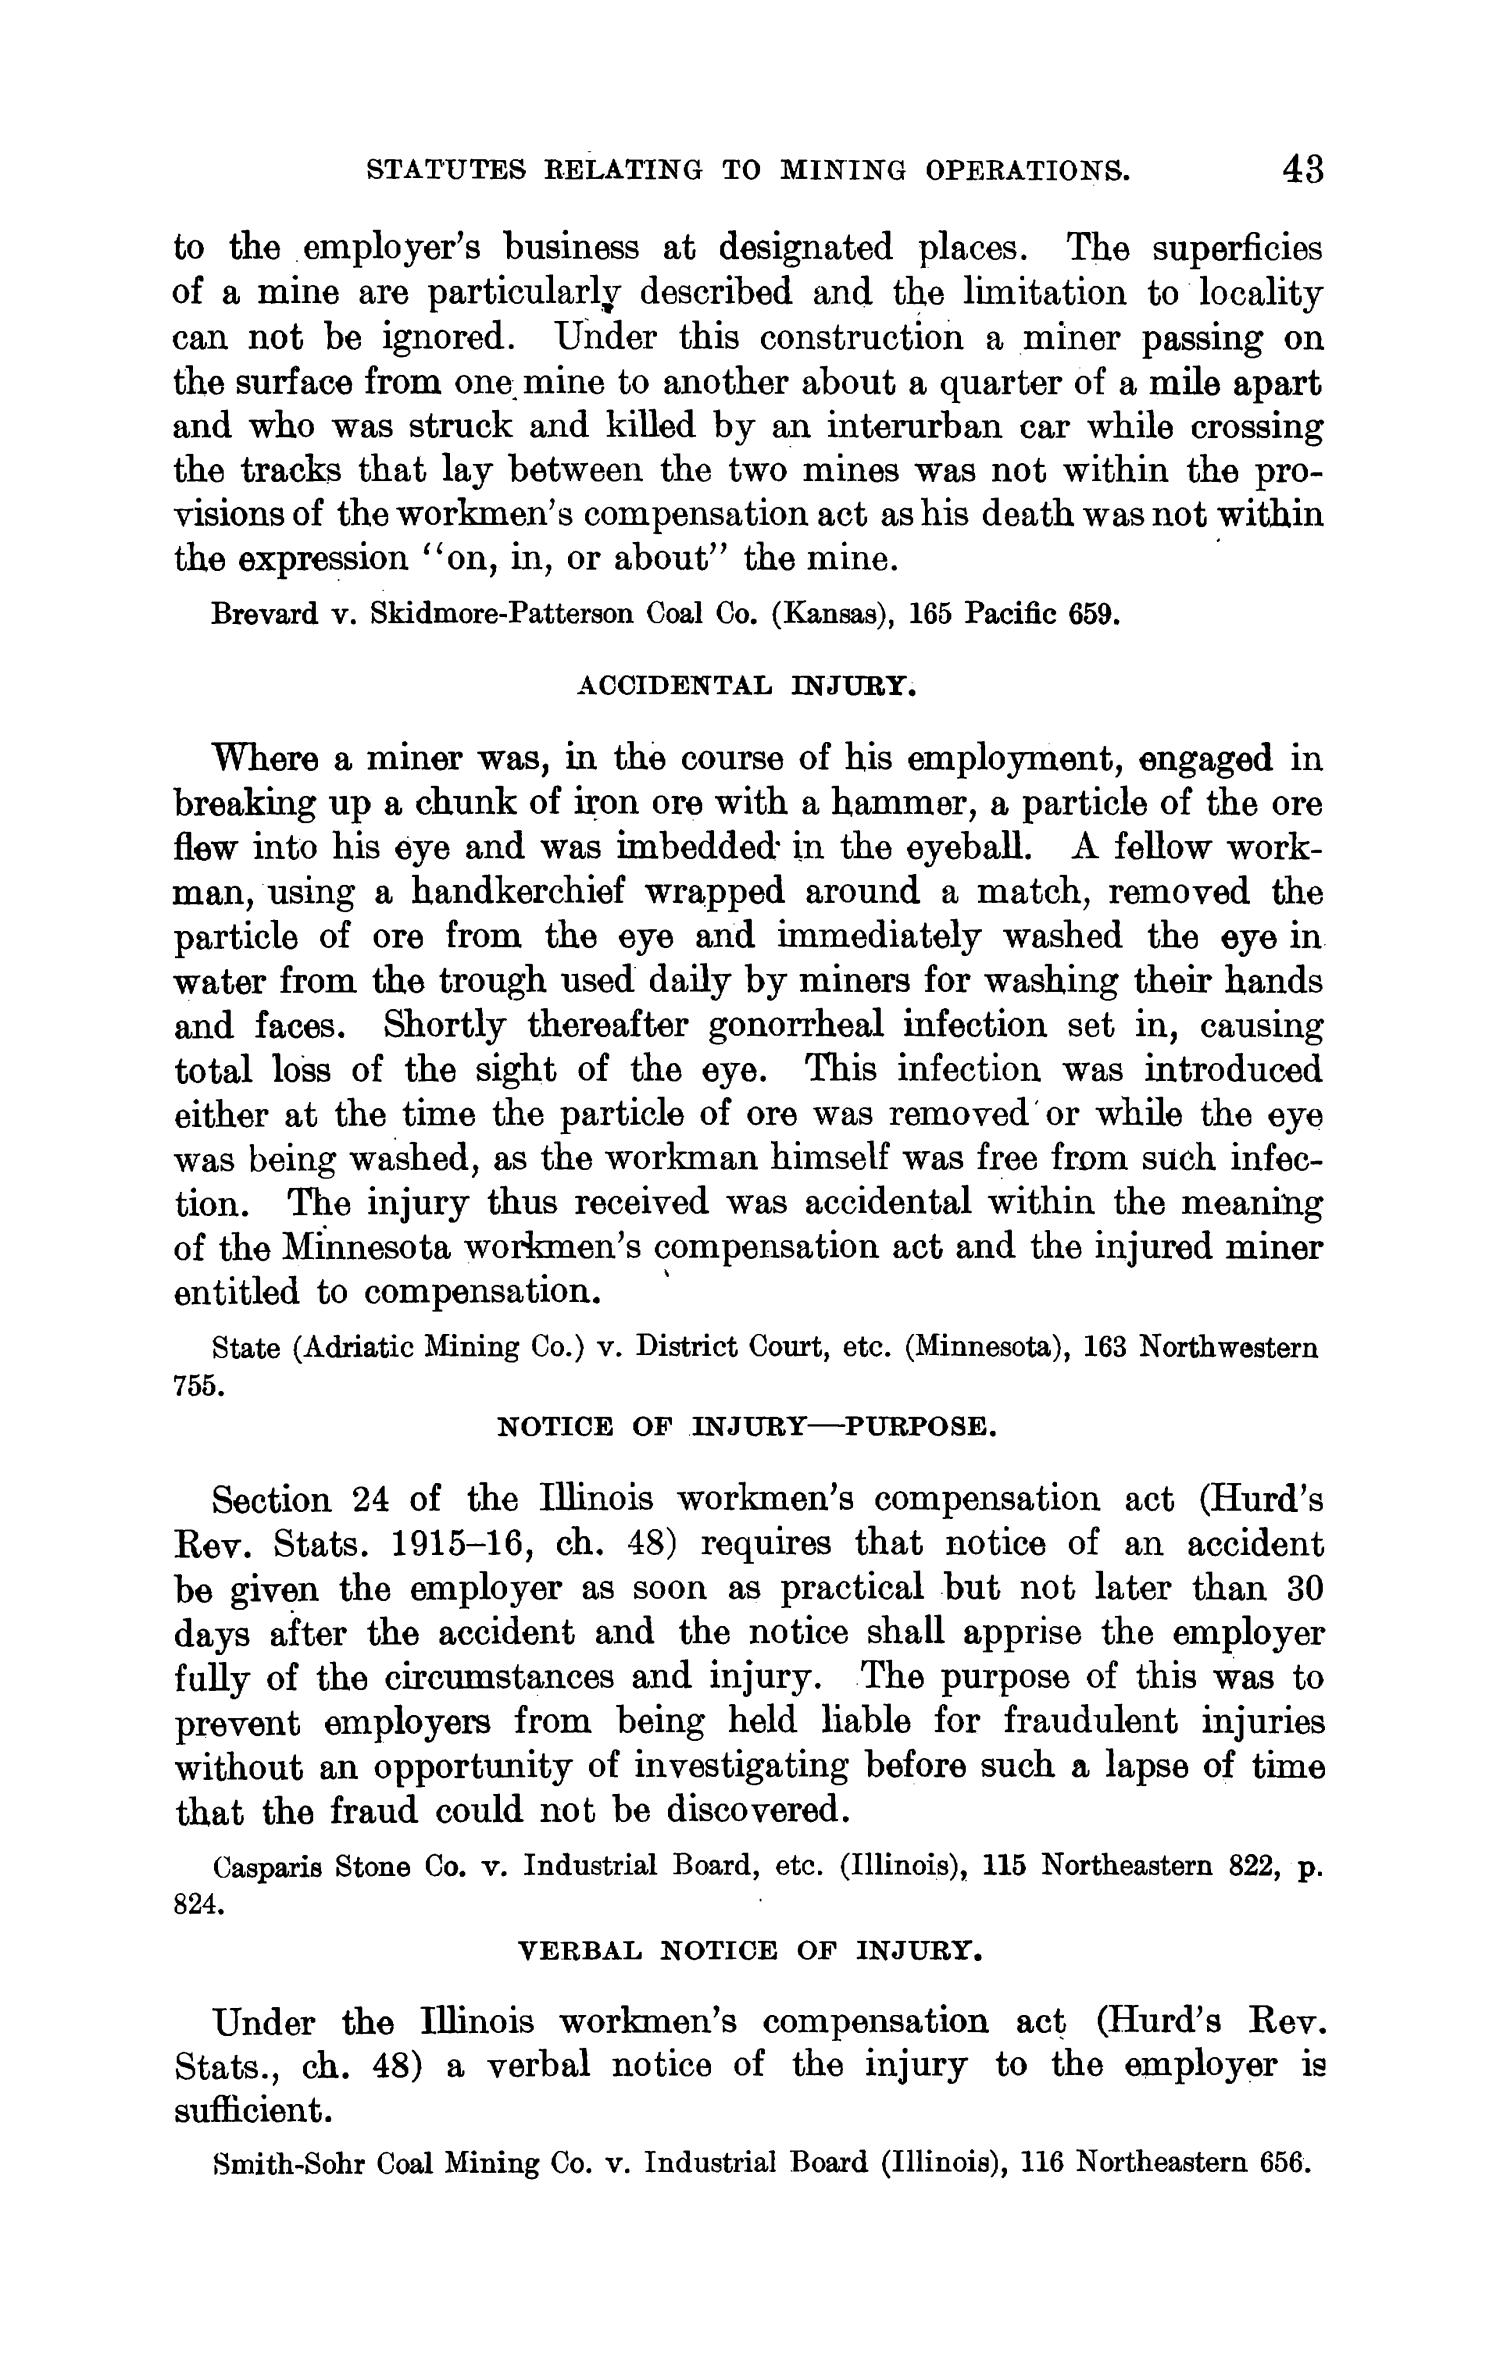 Abstracts of Current Decisions on Mines and Mining: May to August, 1917                                                                                                      43